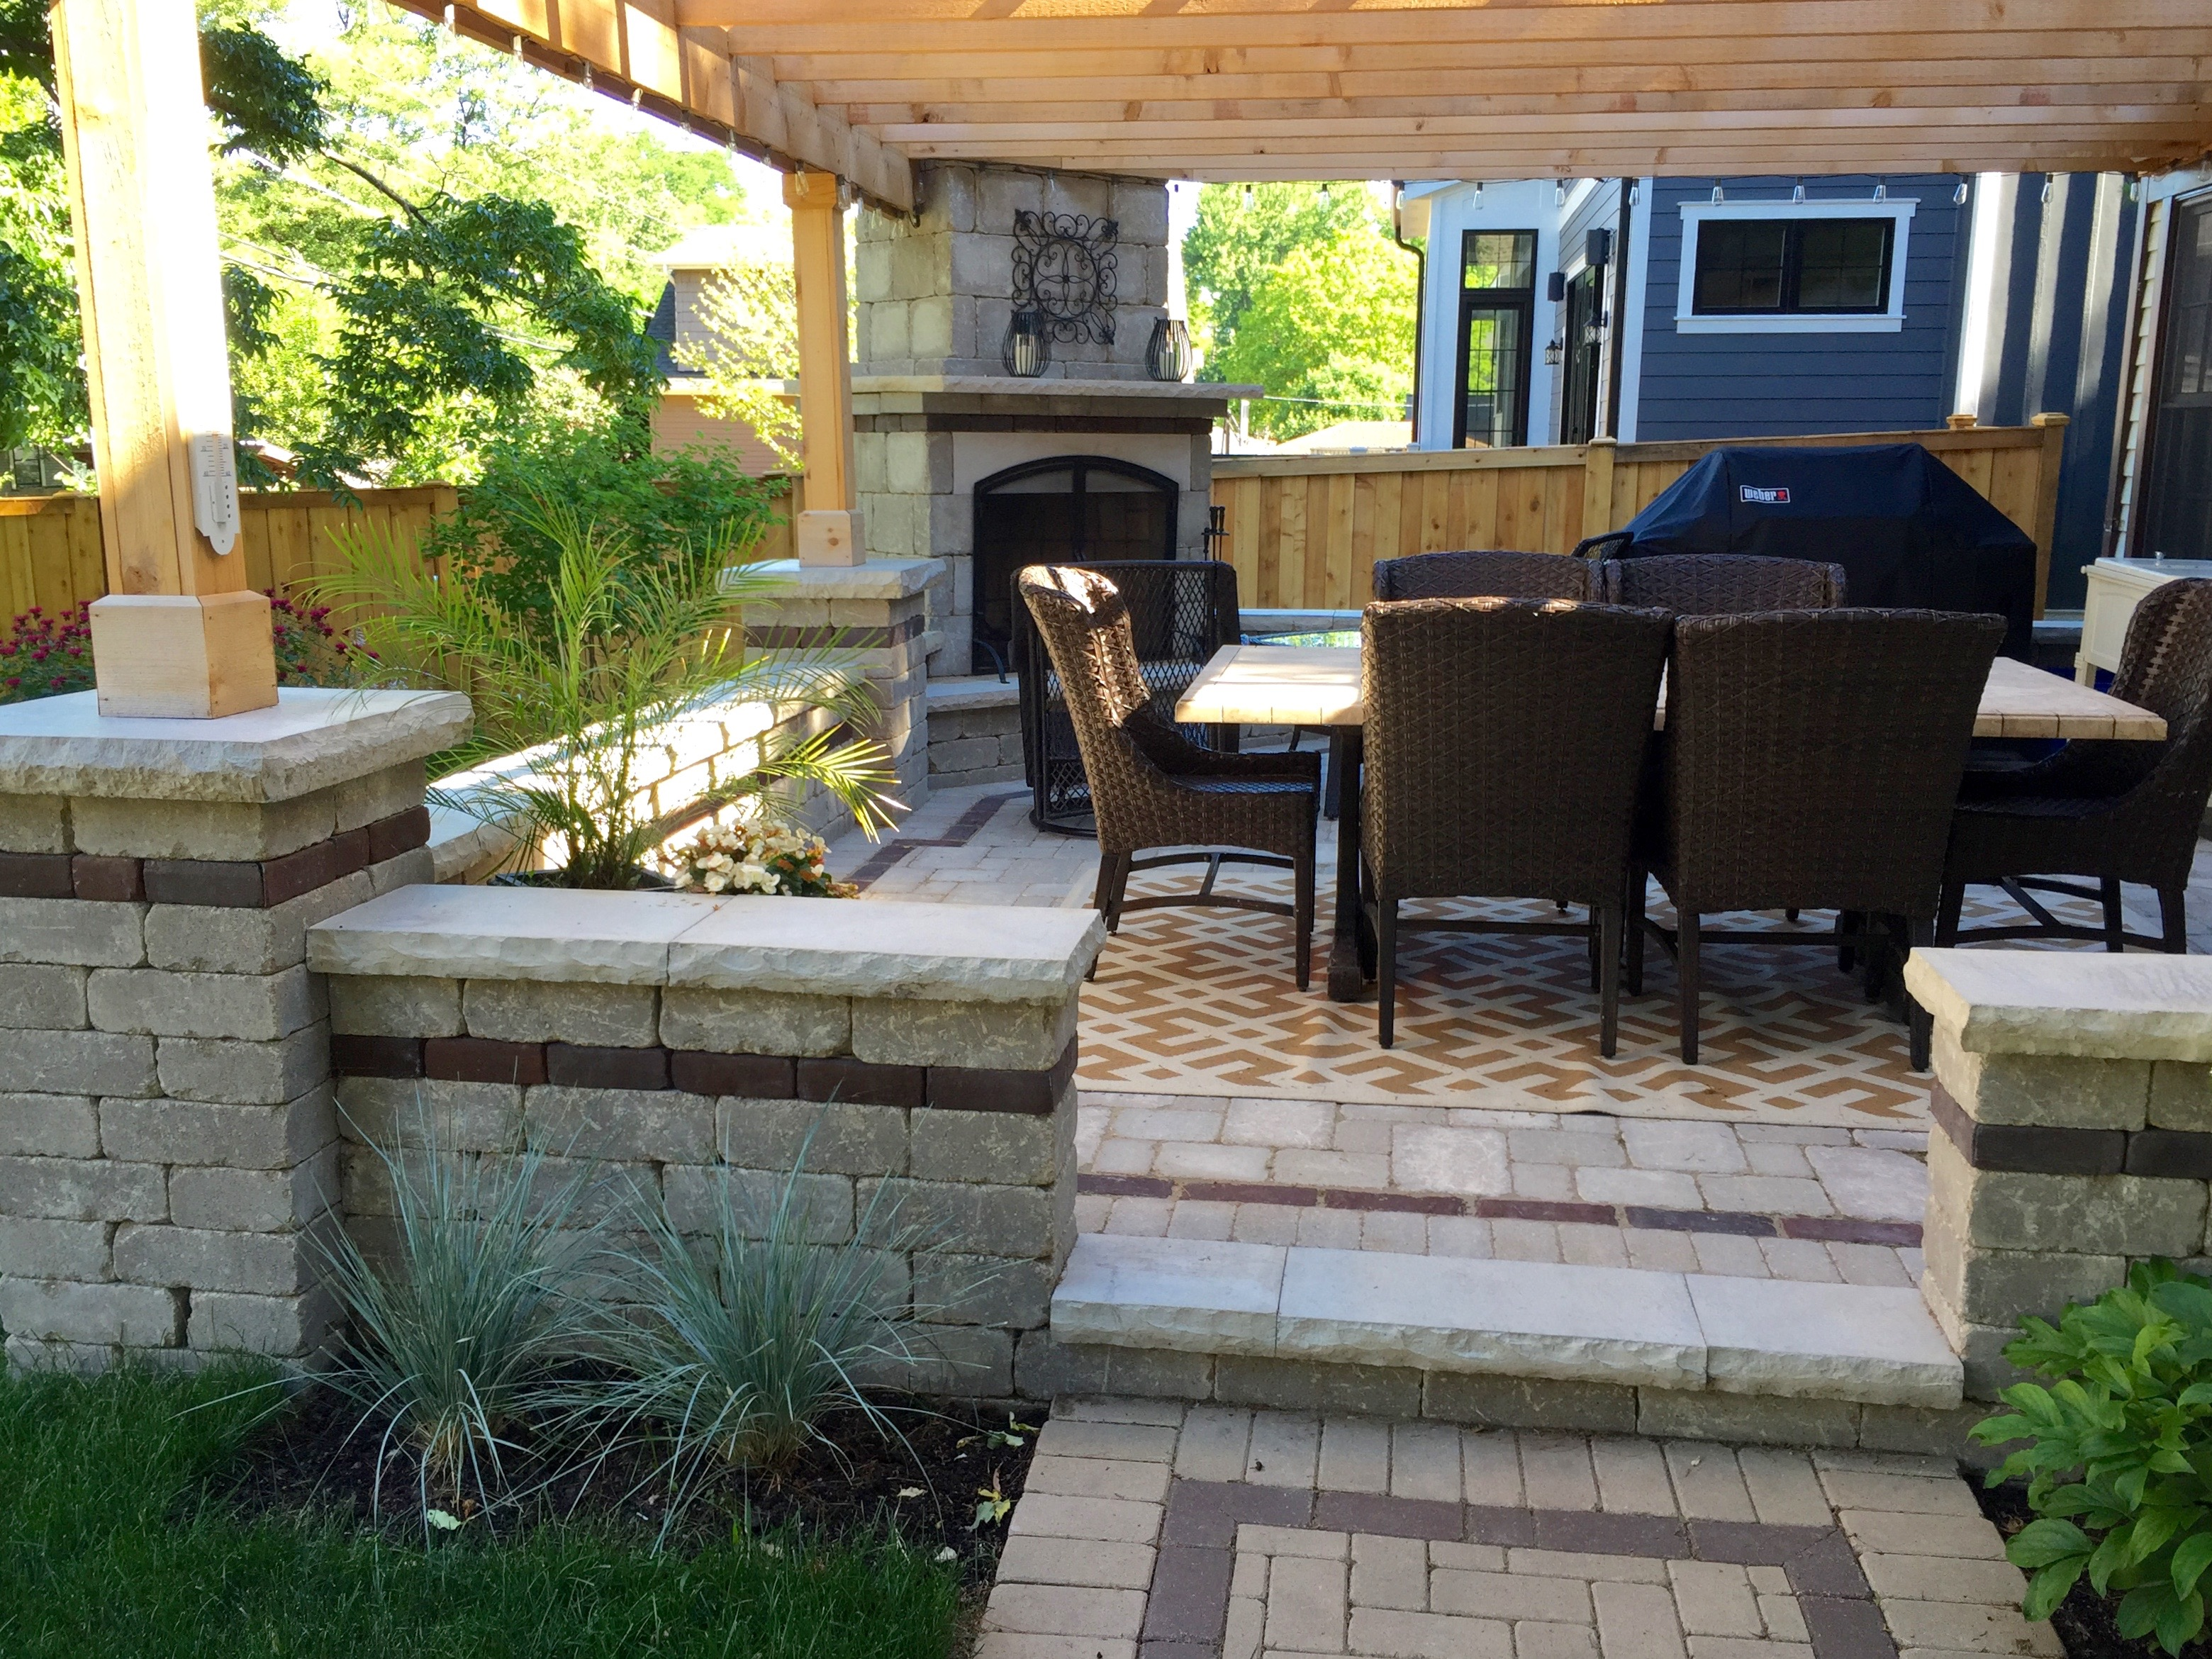 High Quality Let Us Create A Beautiful, Custom Designed, Expertly Built Patio For You  That Will Extend Your Homeu0027s Living Spaceu2026 And Its Value.